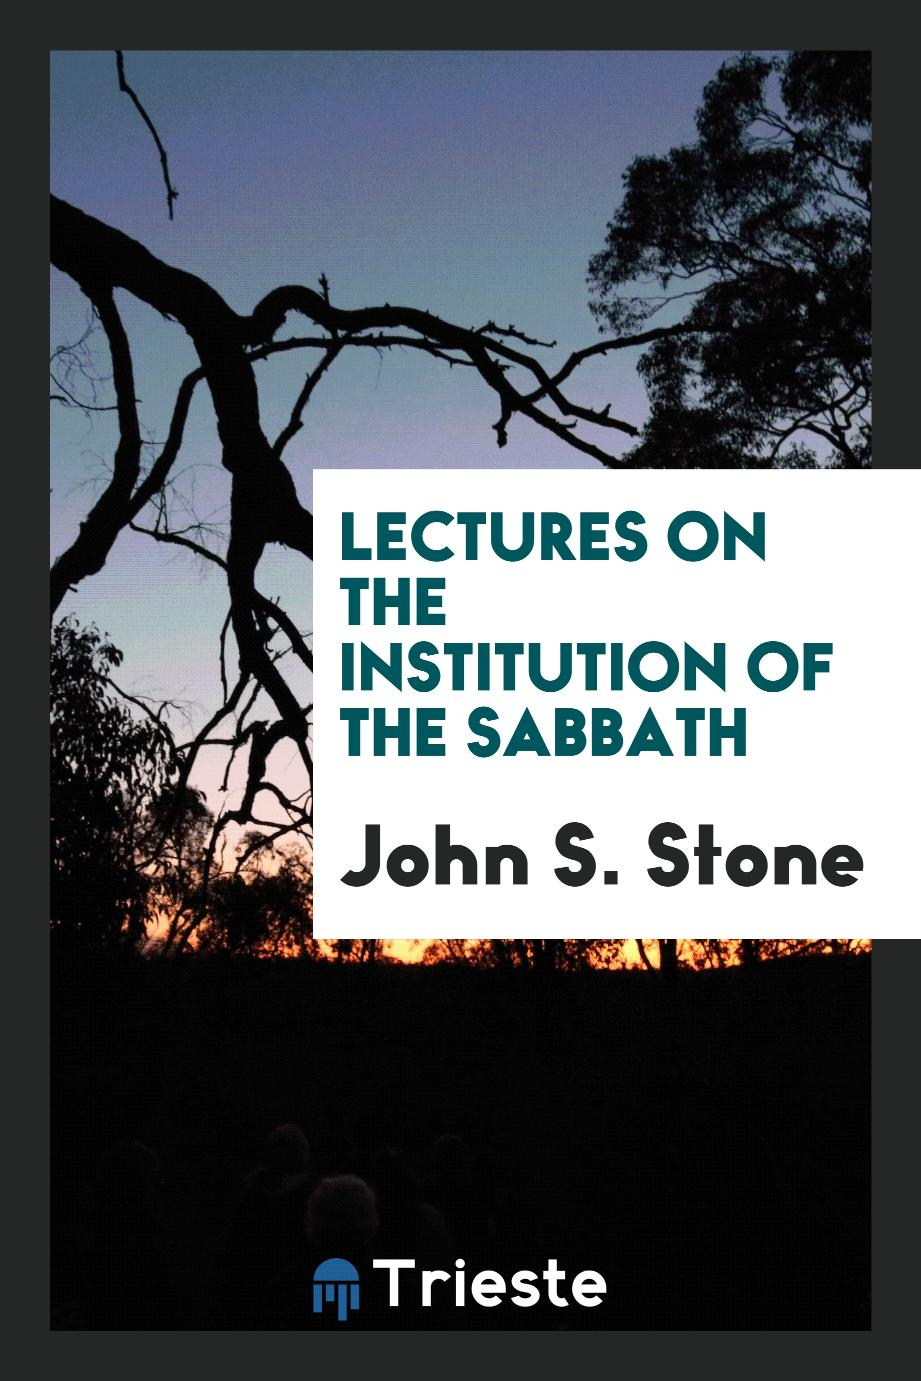 Lectures on the Institution of the Sabbath